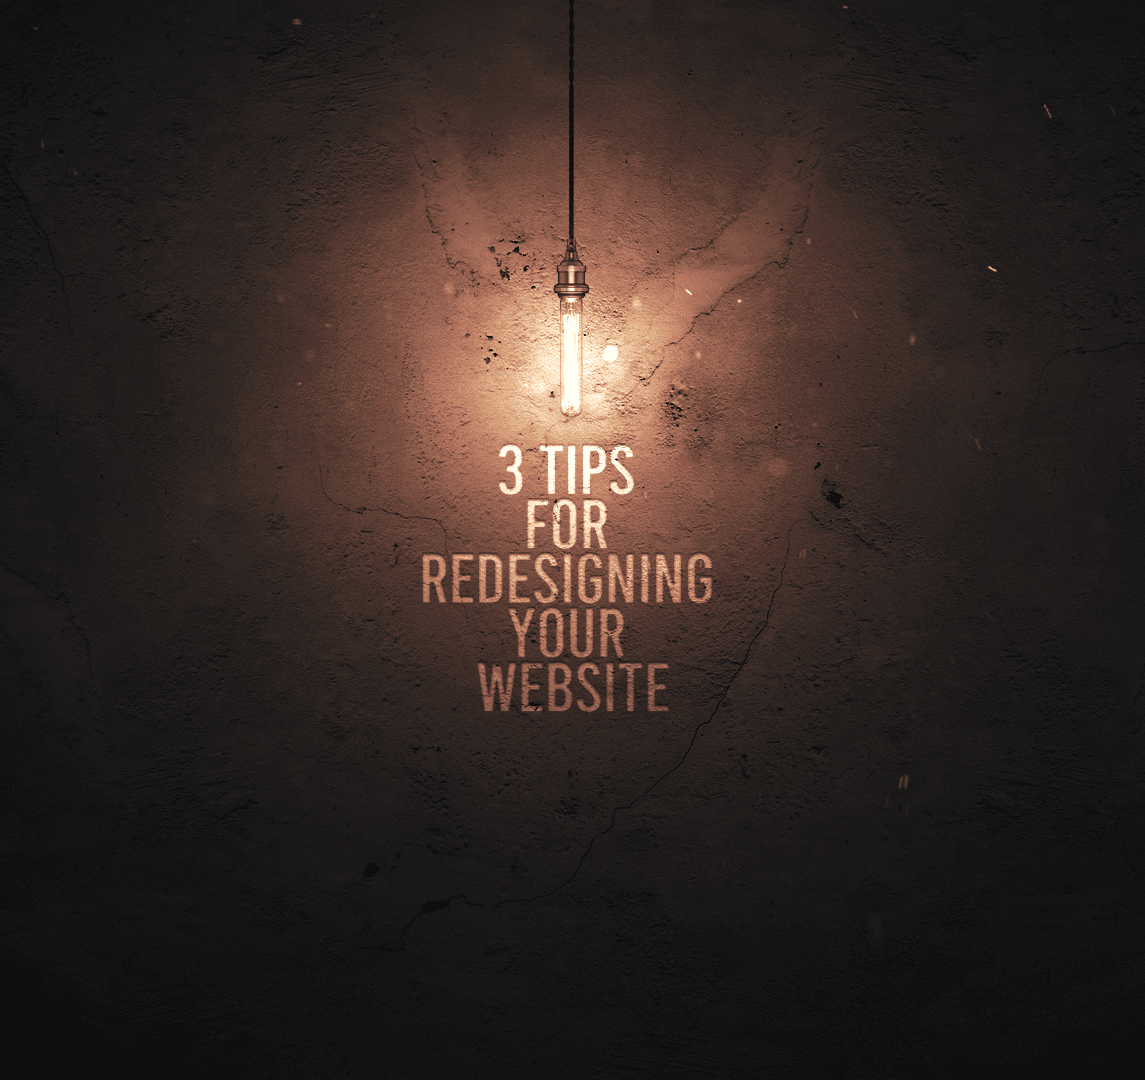 3 Tips For Redesigning Your Website